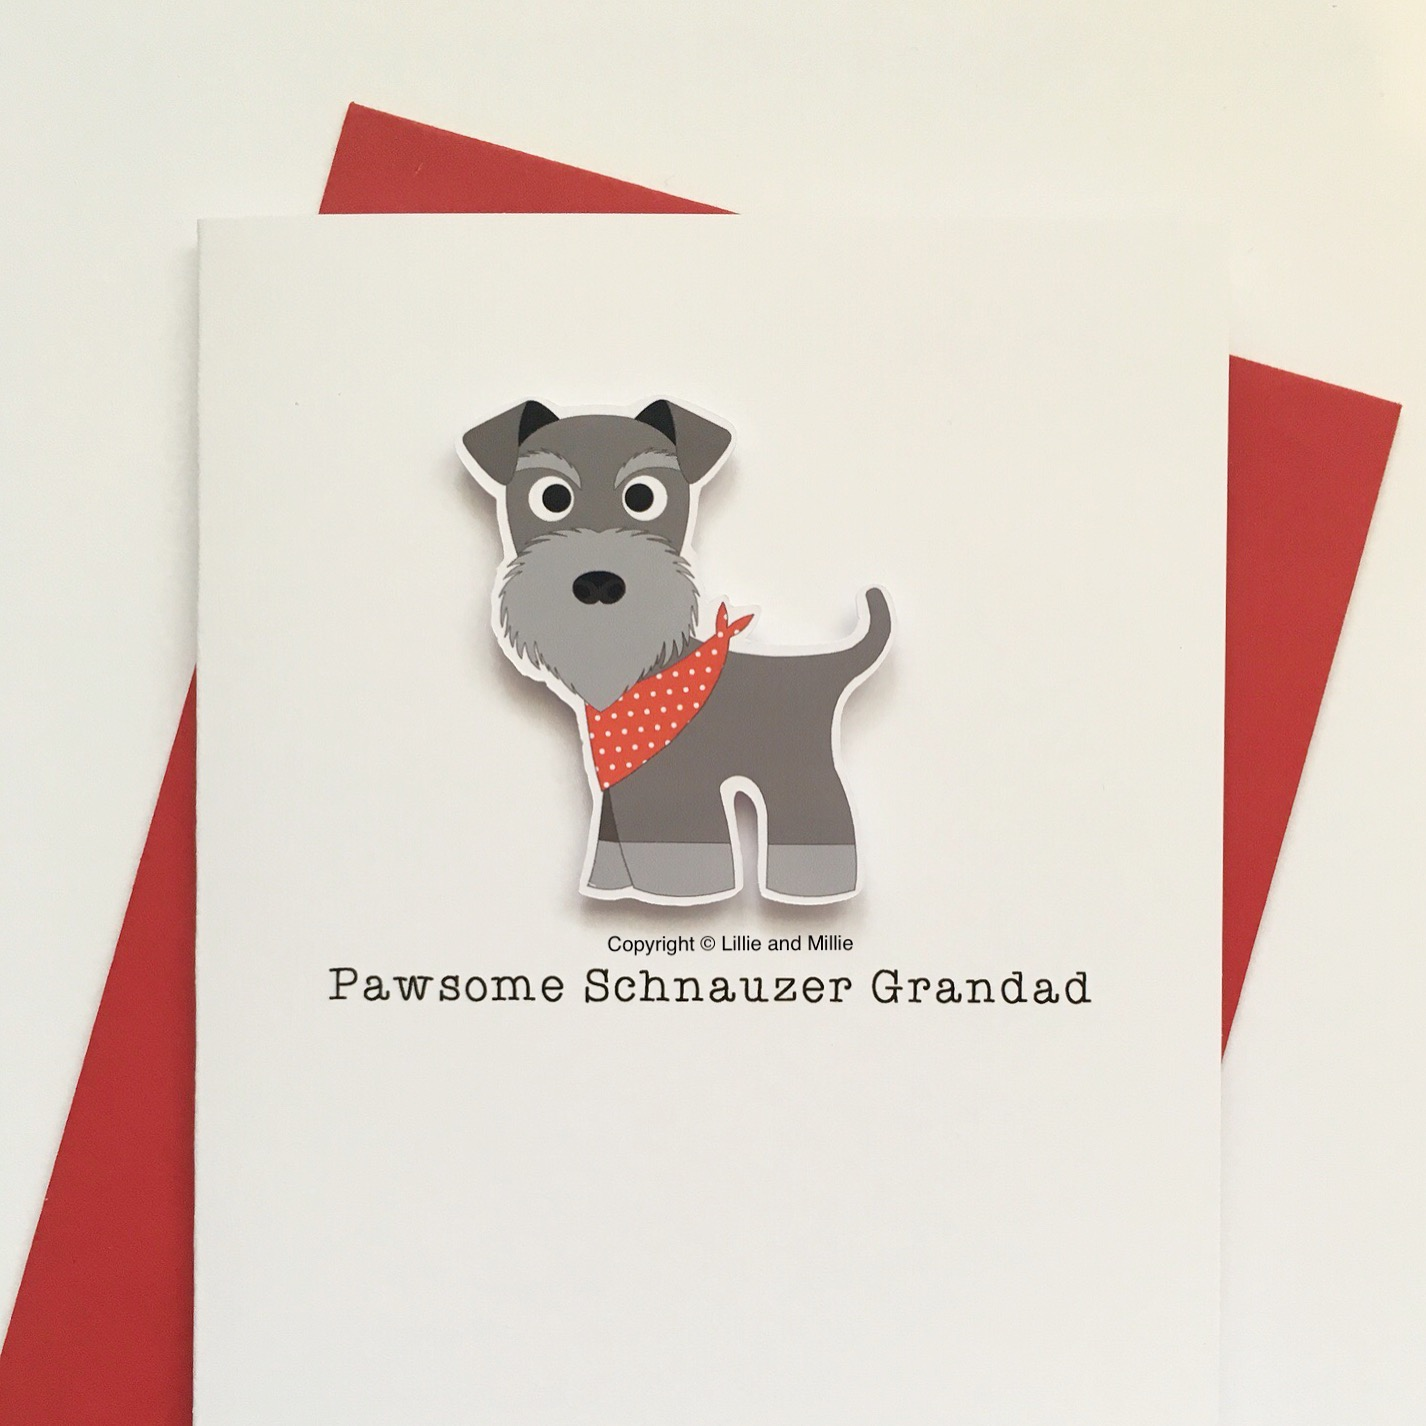 Cute and Cuddly Pawsome Schnauzer Grandad Card